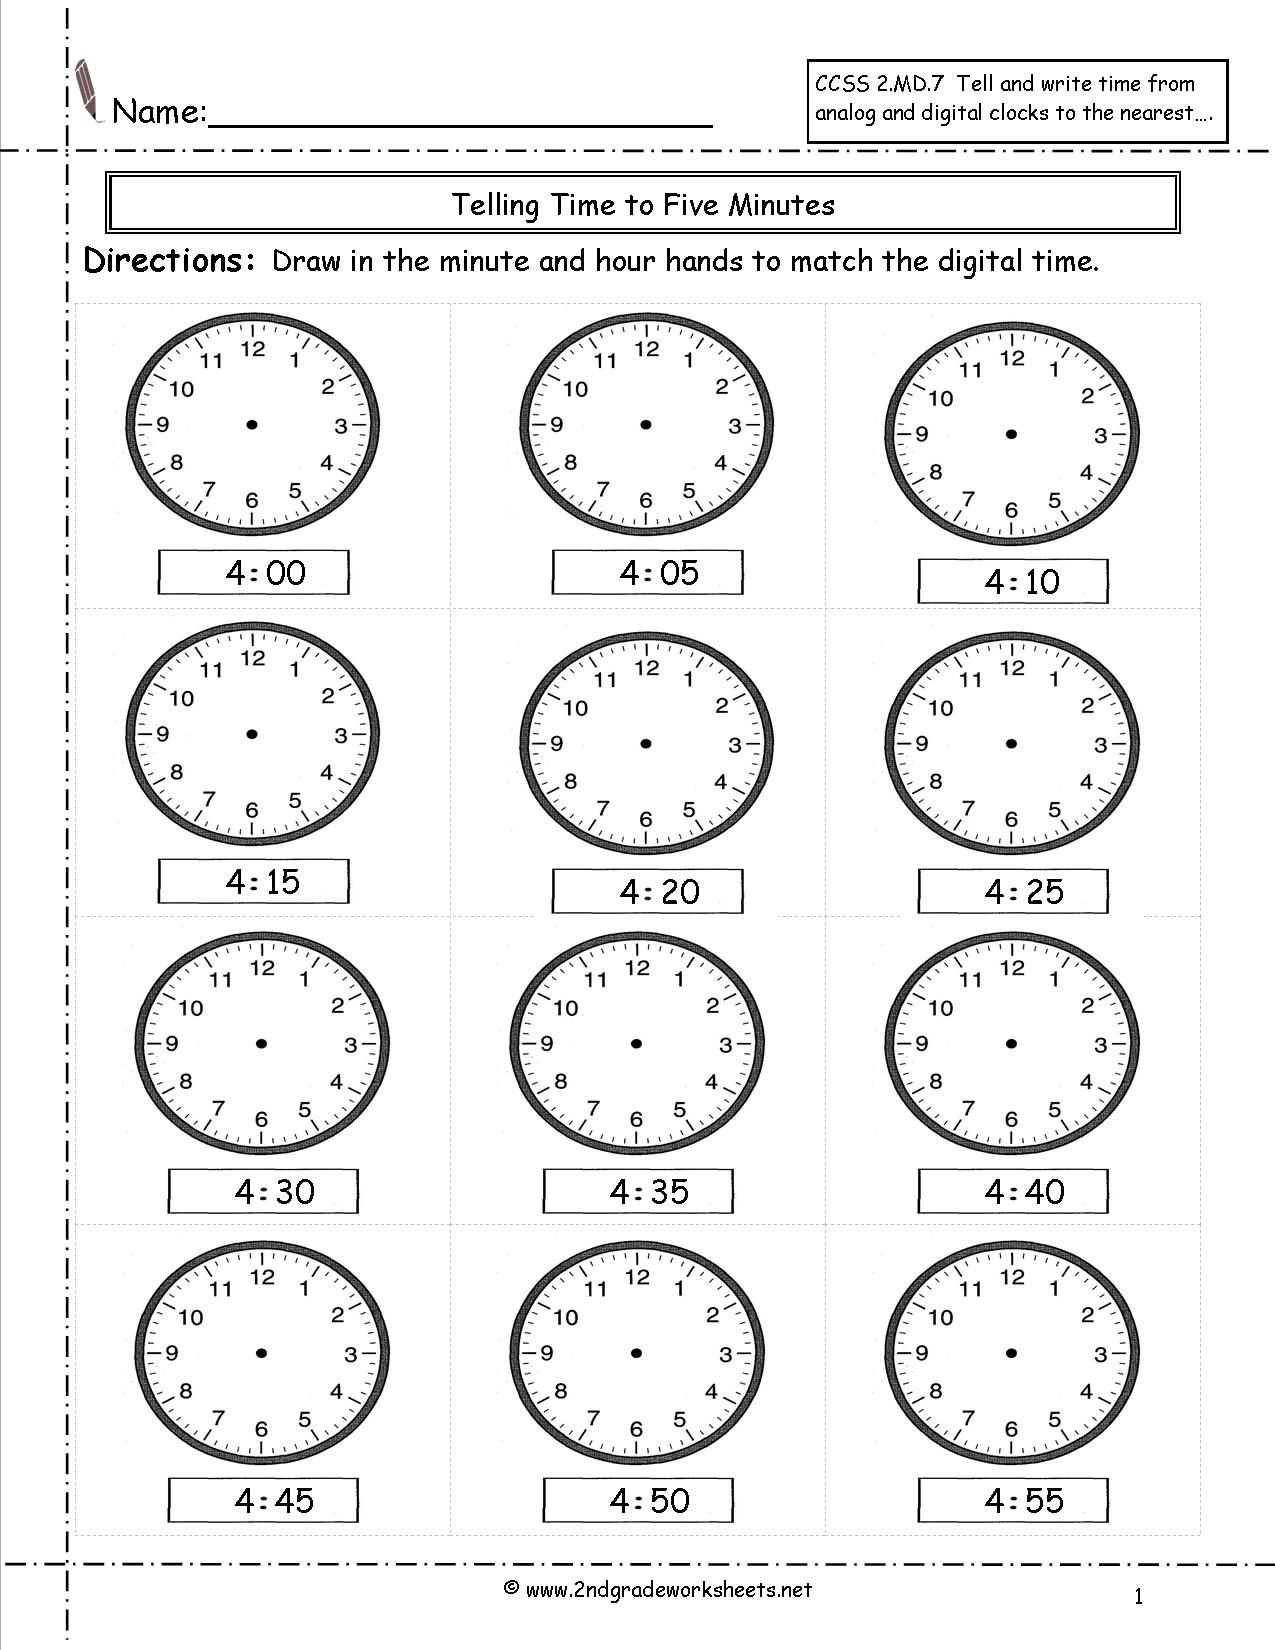 medium resolution of Marvellous Telling And Writing Time Worksheets Clock To The Hour  Tellingtimedrawhandsfourtofourfift ~ …   Telling time worksheets